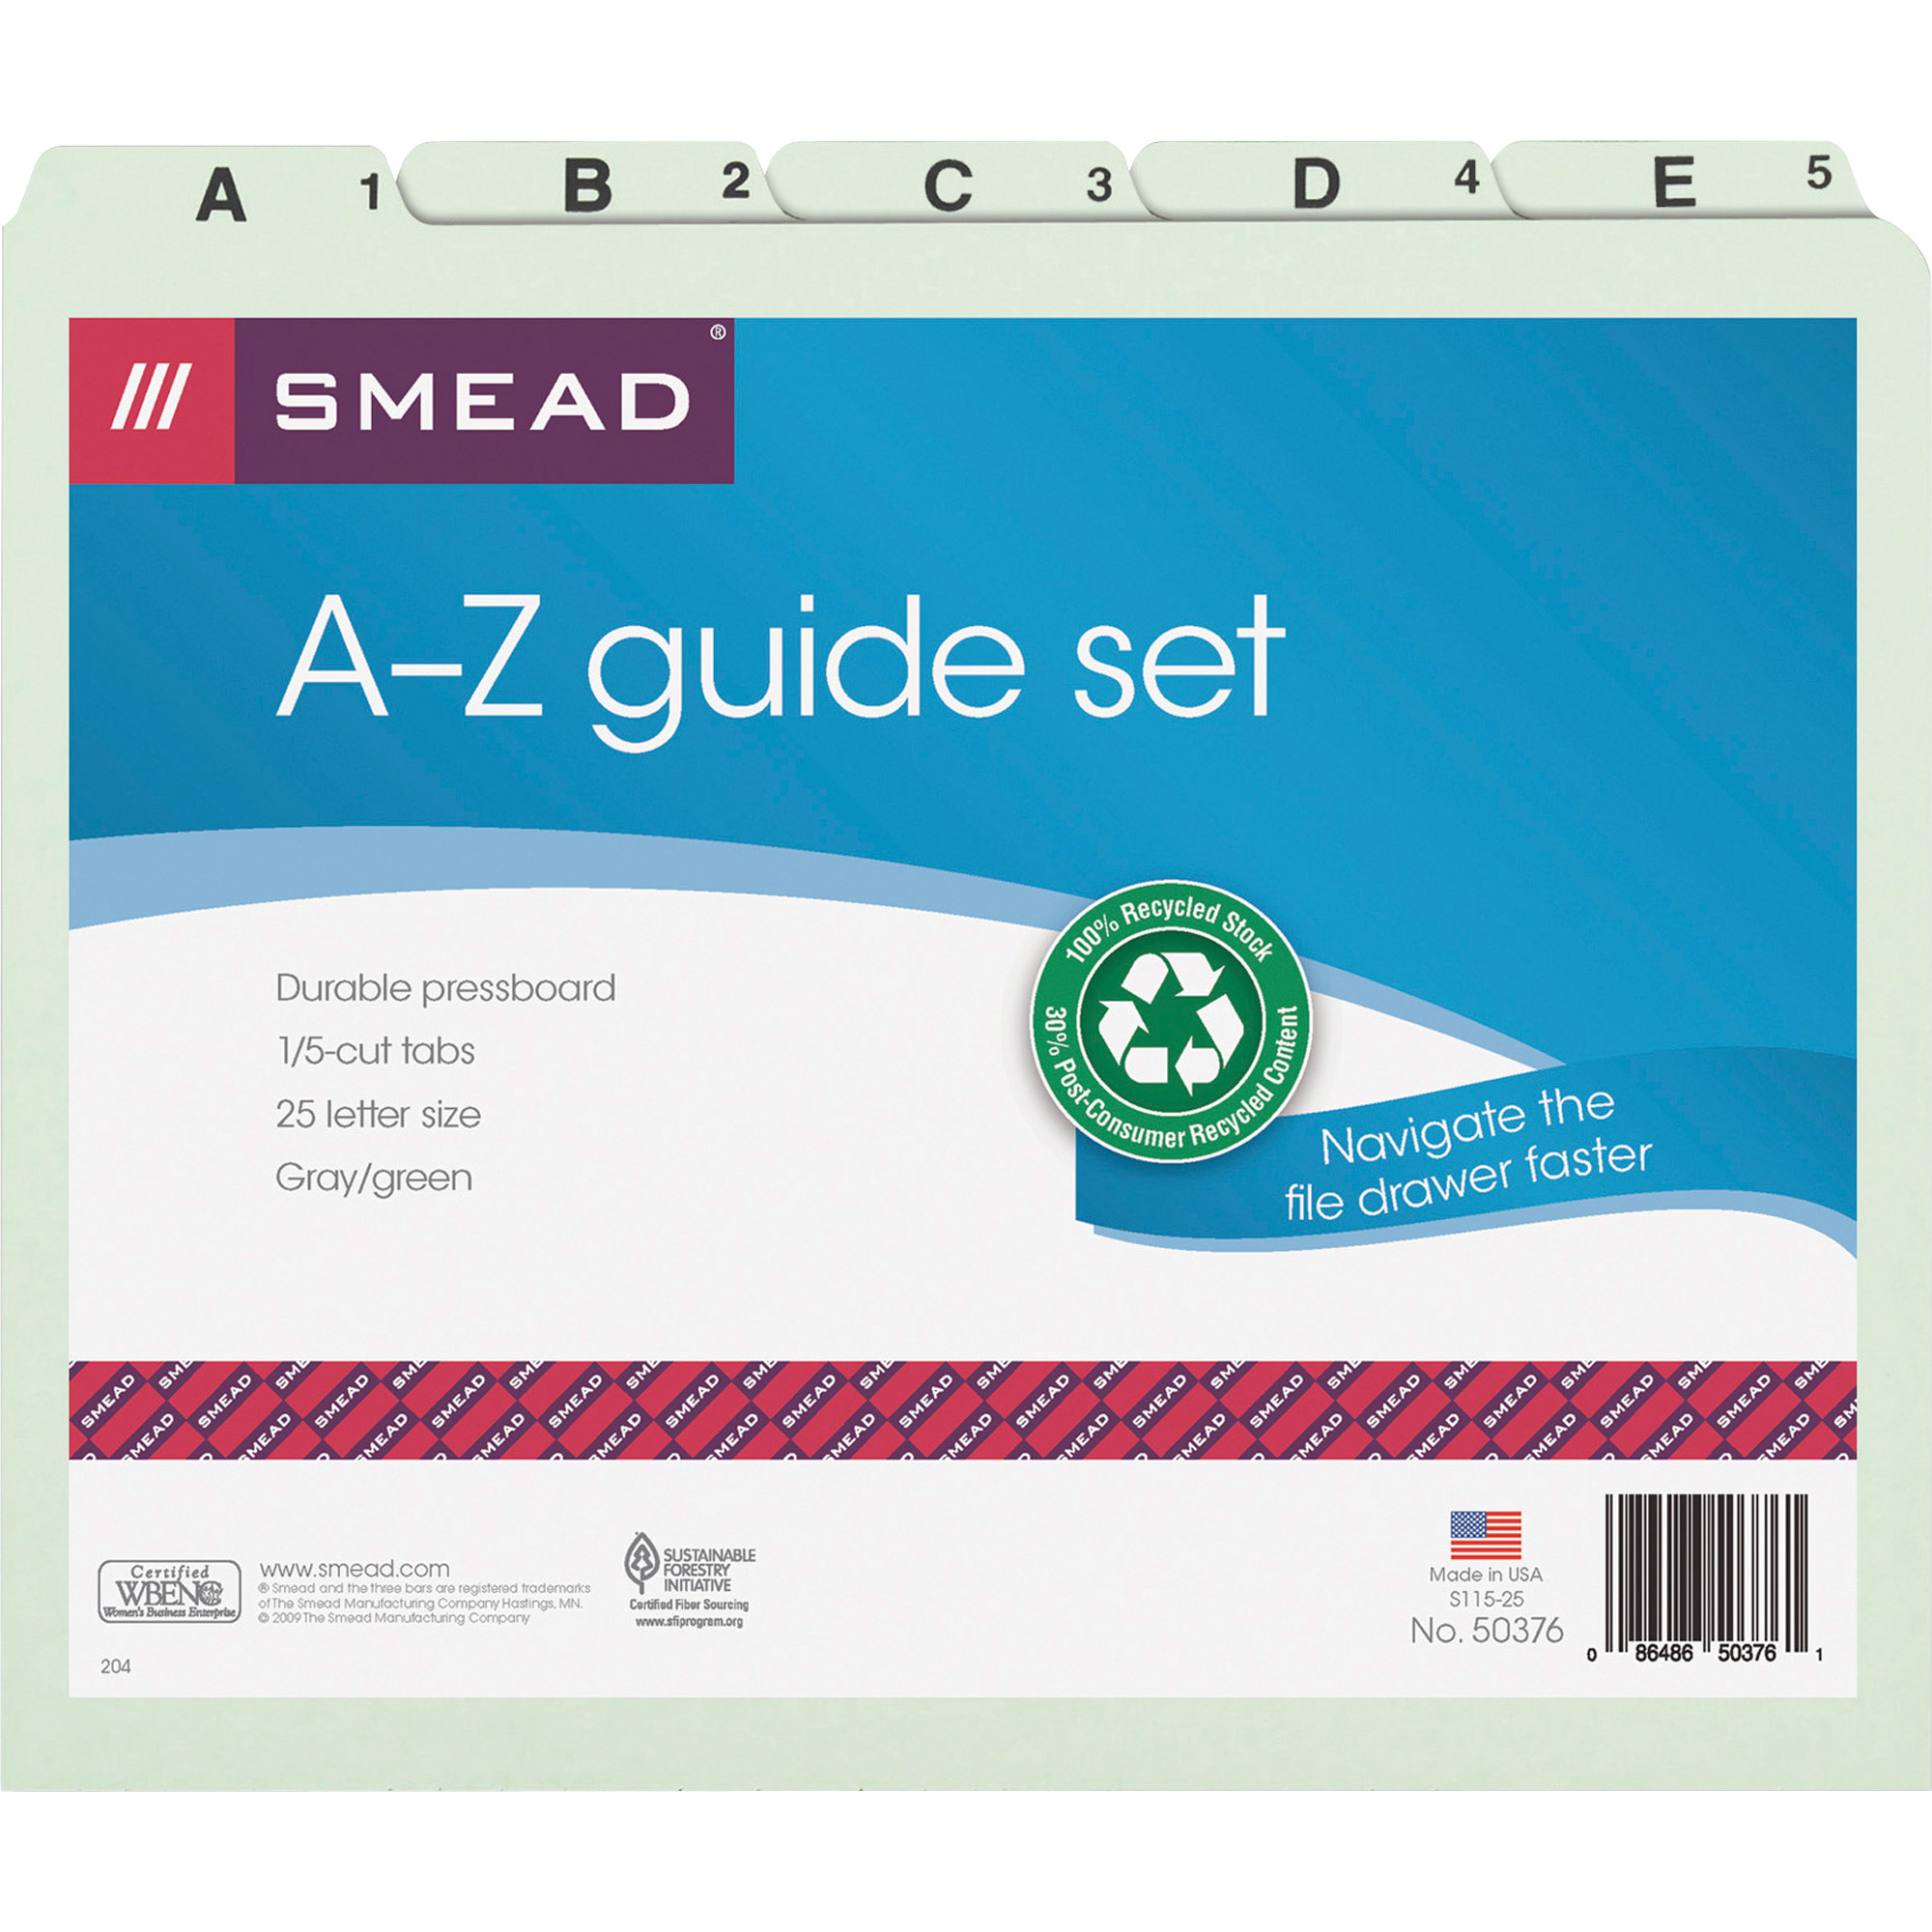 and 1-20 Smead Desk File//Sorter A-Z Legal Size 20 Dividers Alphabetic B...